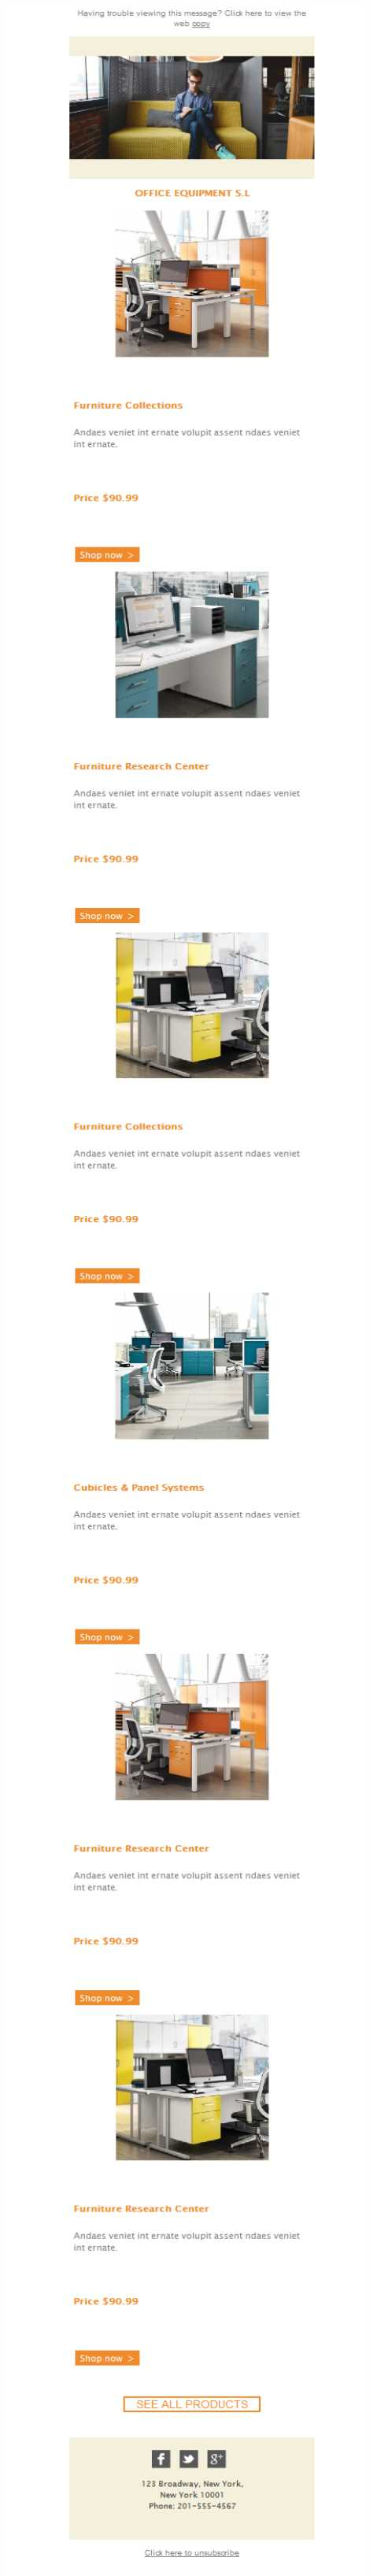 Templates Emailing Office Equipment Furniture Sarbacane